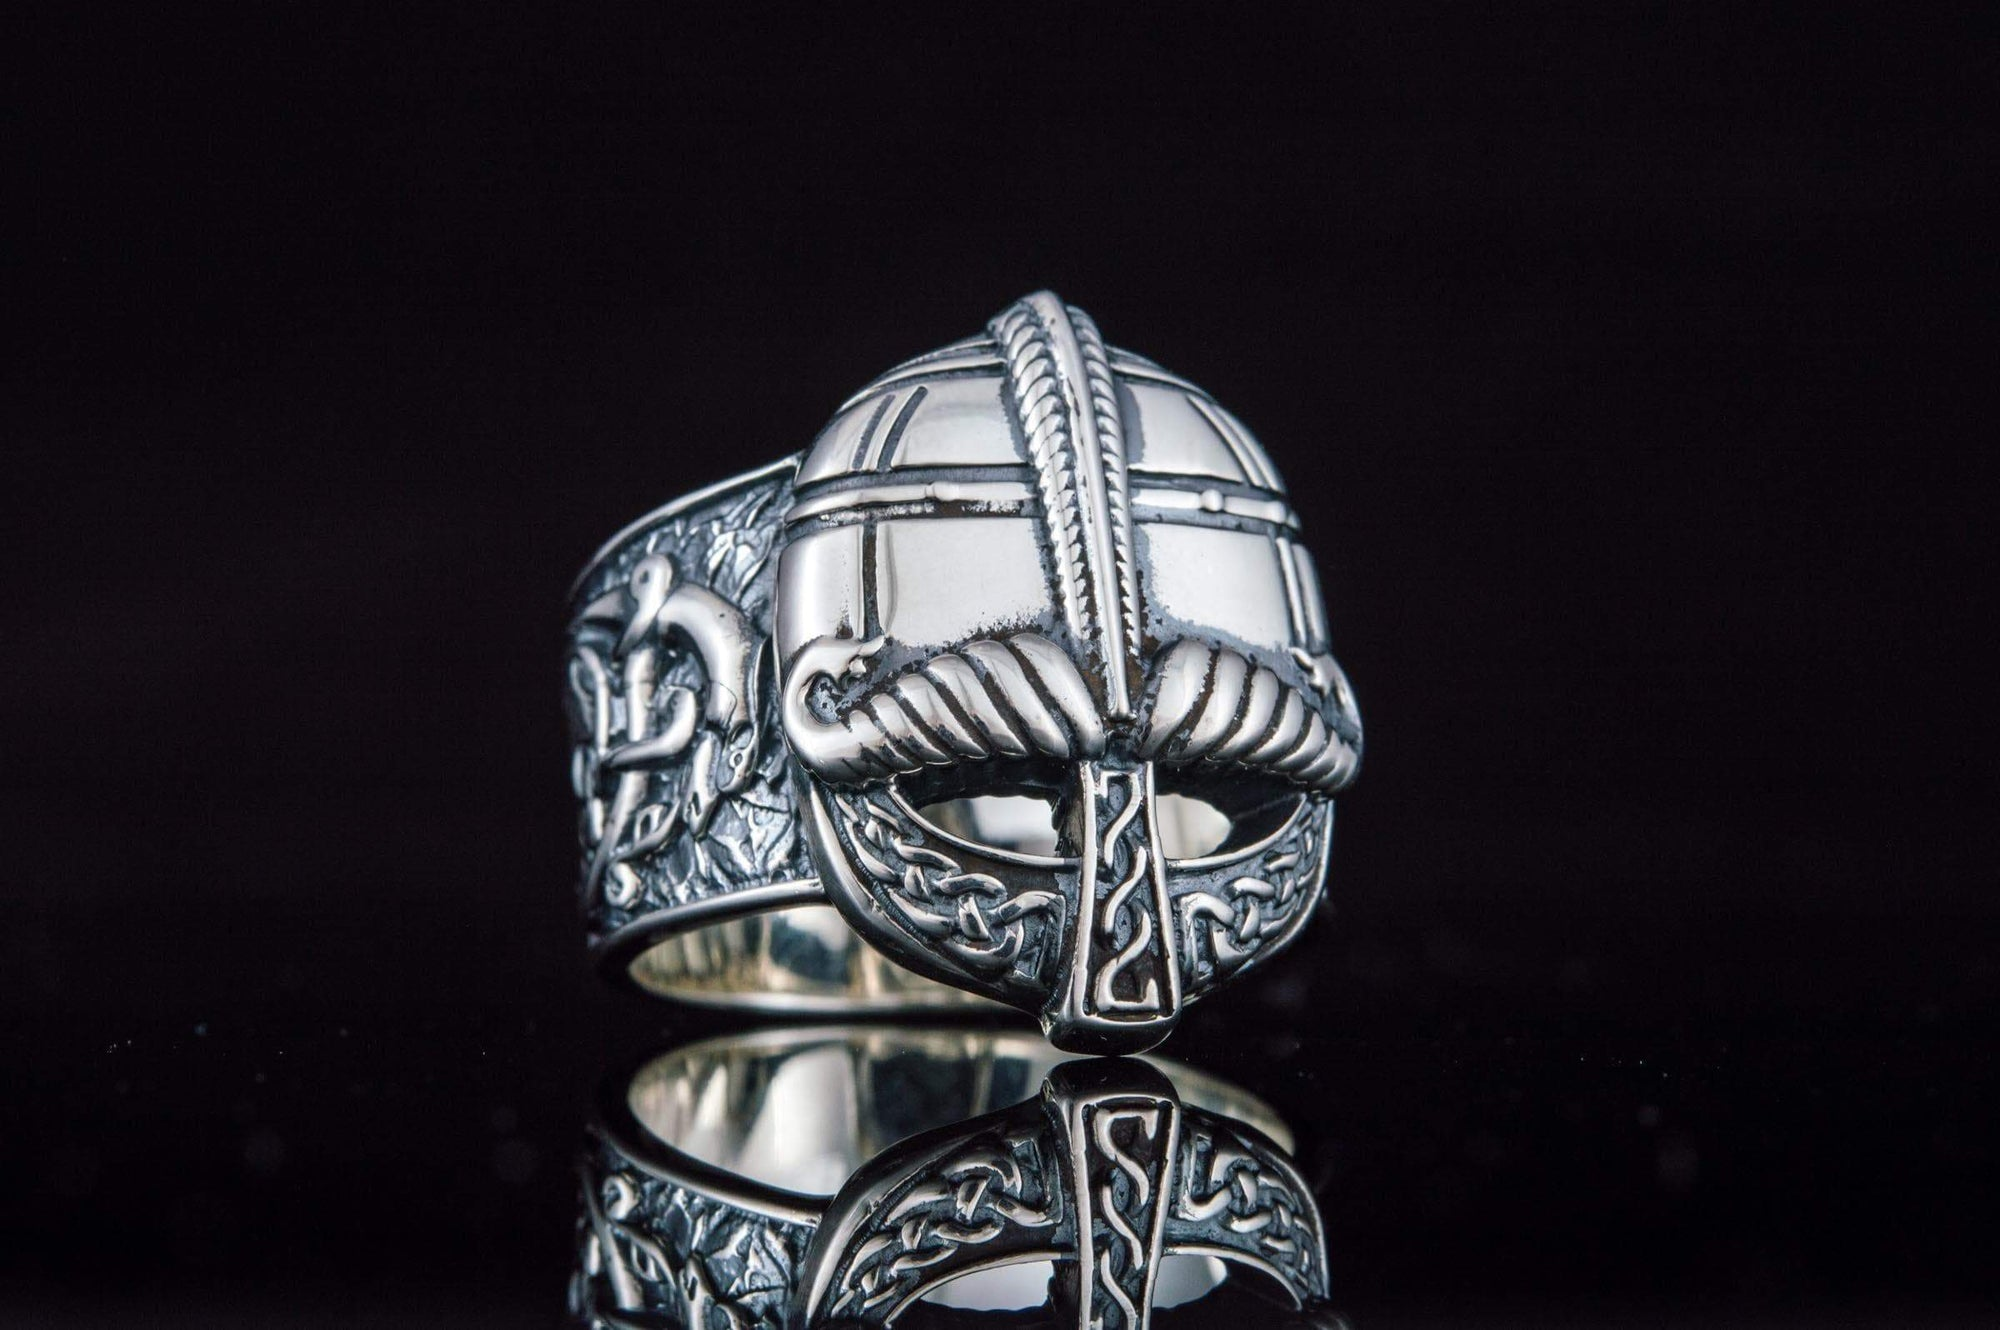 Viking Helmet with Knotwork & Ornaments Unique Handcrafted Ring